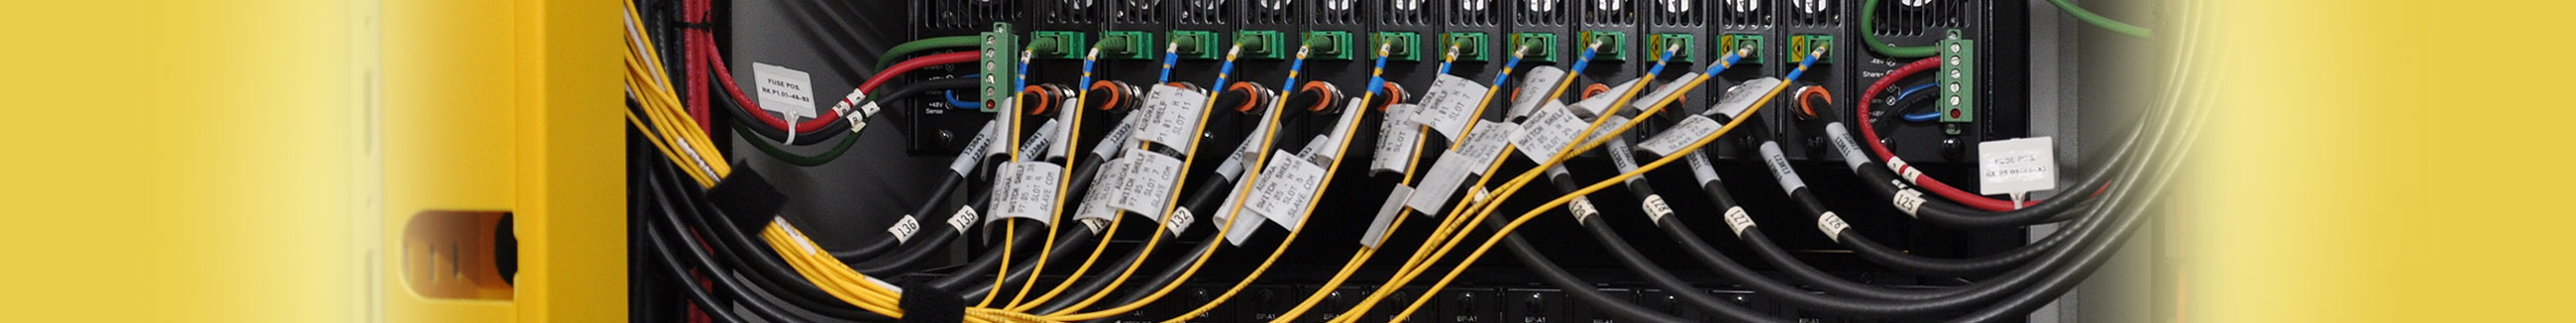 structured wiring, patch cords, data rack wiring, organize wiring